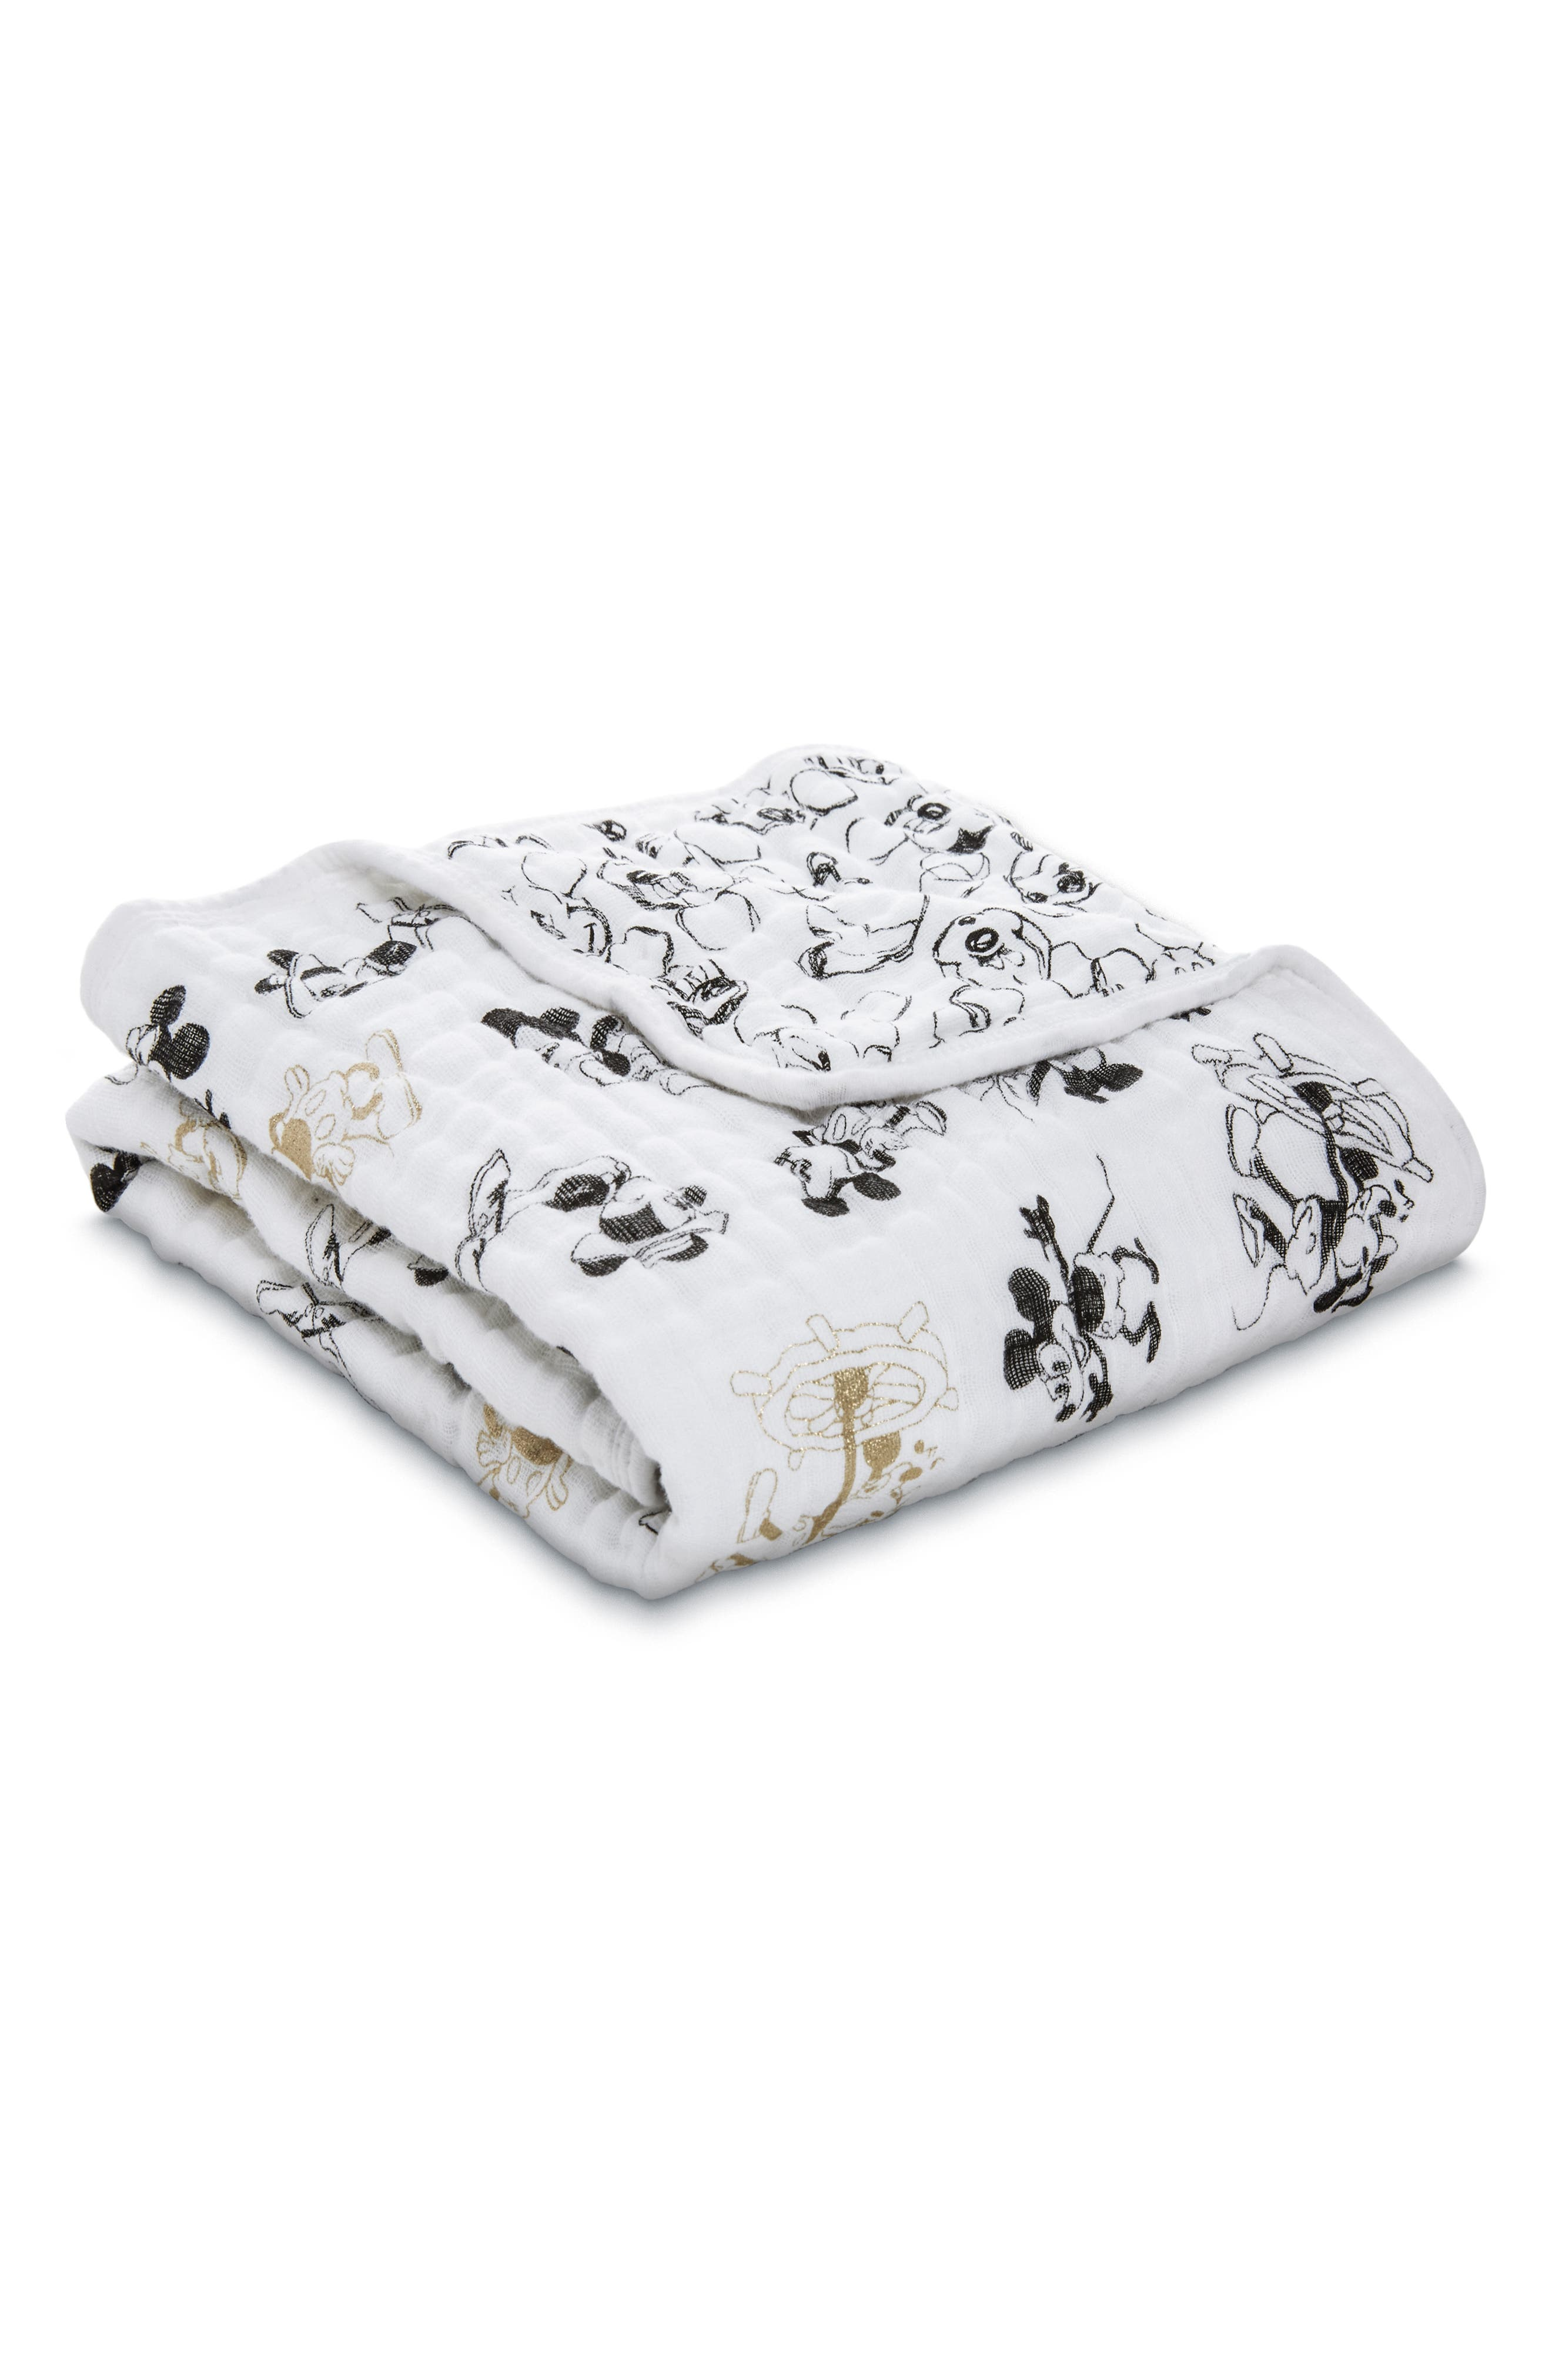 Disney<sup>®</sup> Mickey's 90th Muslin Stroller Blanket,                             Main thumbnail 1, color,                             BLACK AND GOLD